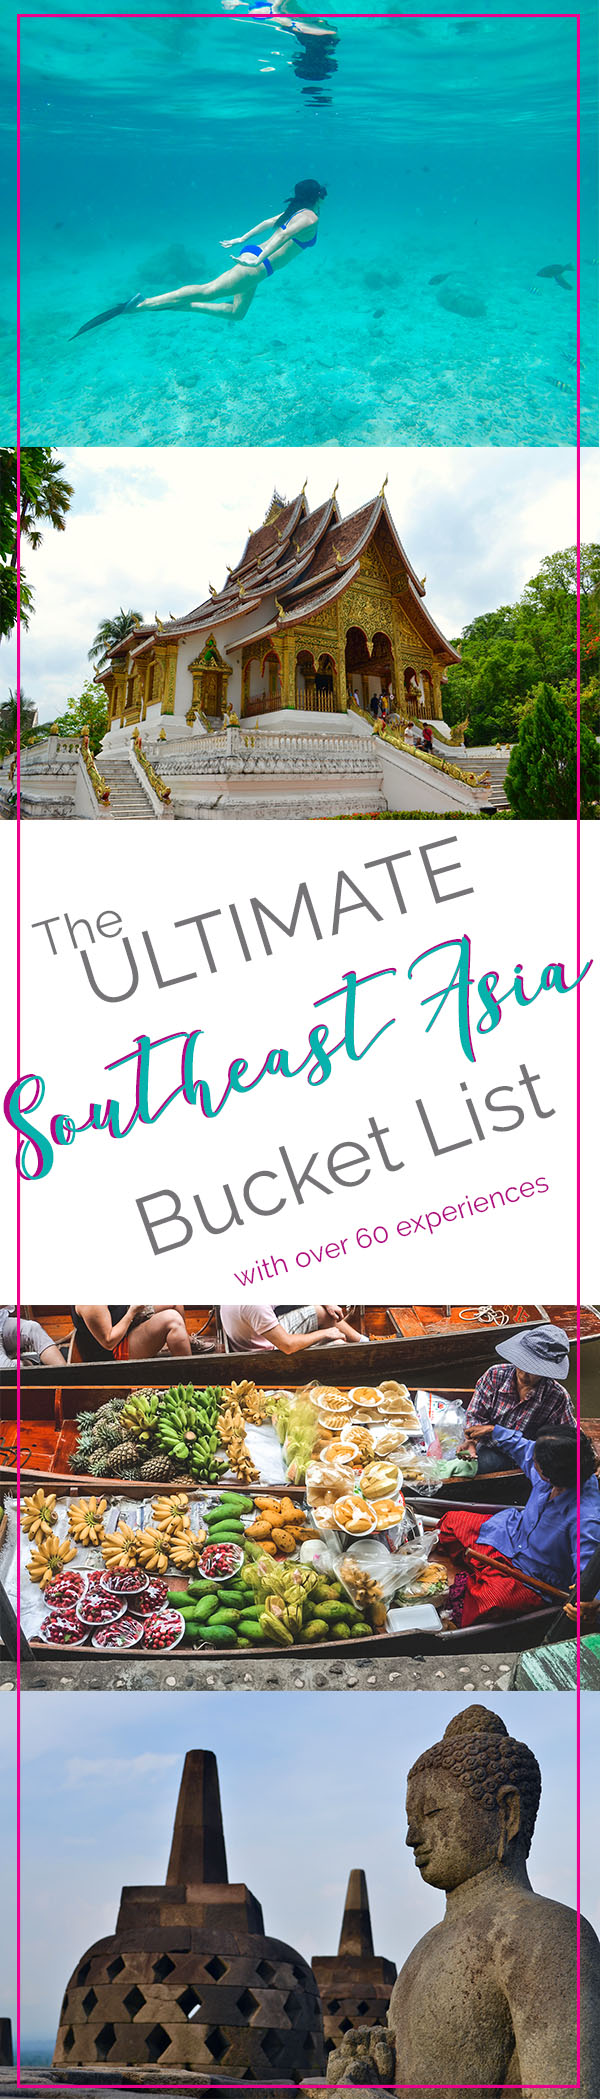 Ultimate Southeast Asia Bucket list - Experiences in Southeast Asia | Hello Raya Blog